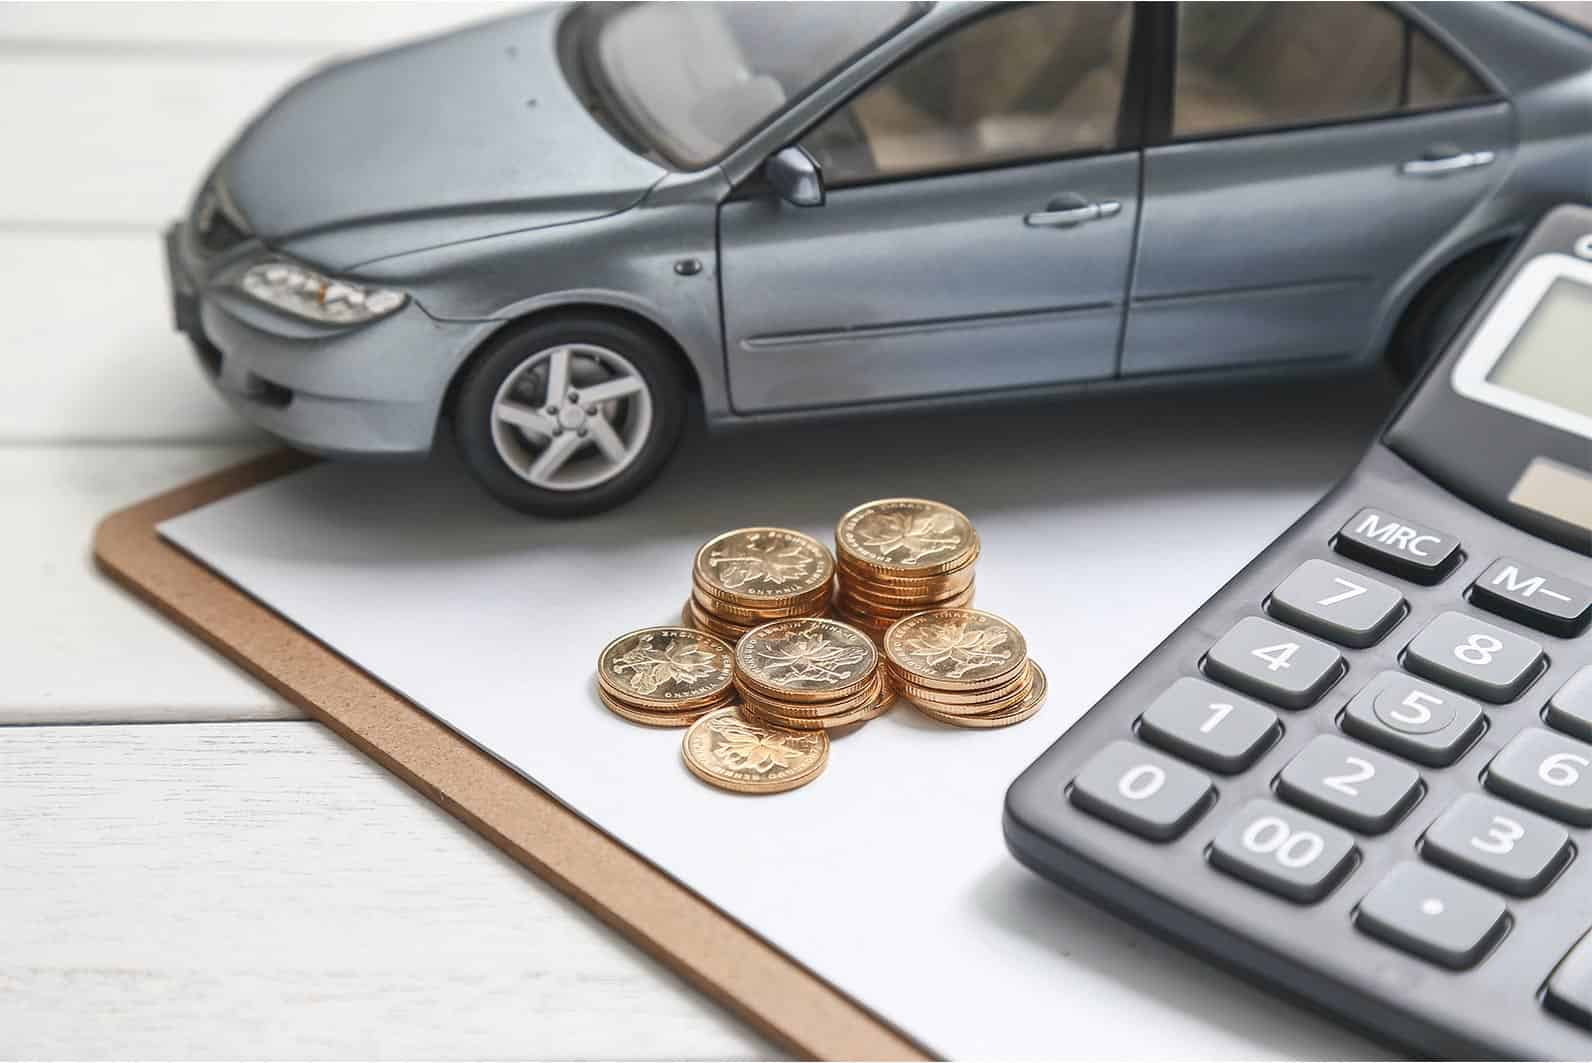 coins next to car model and calculator